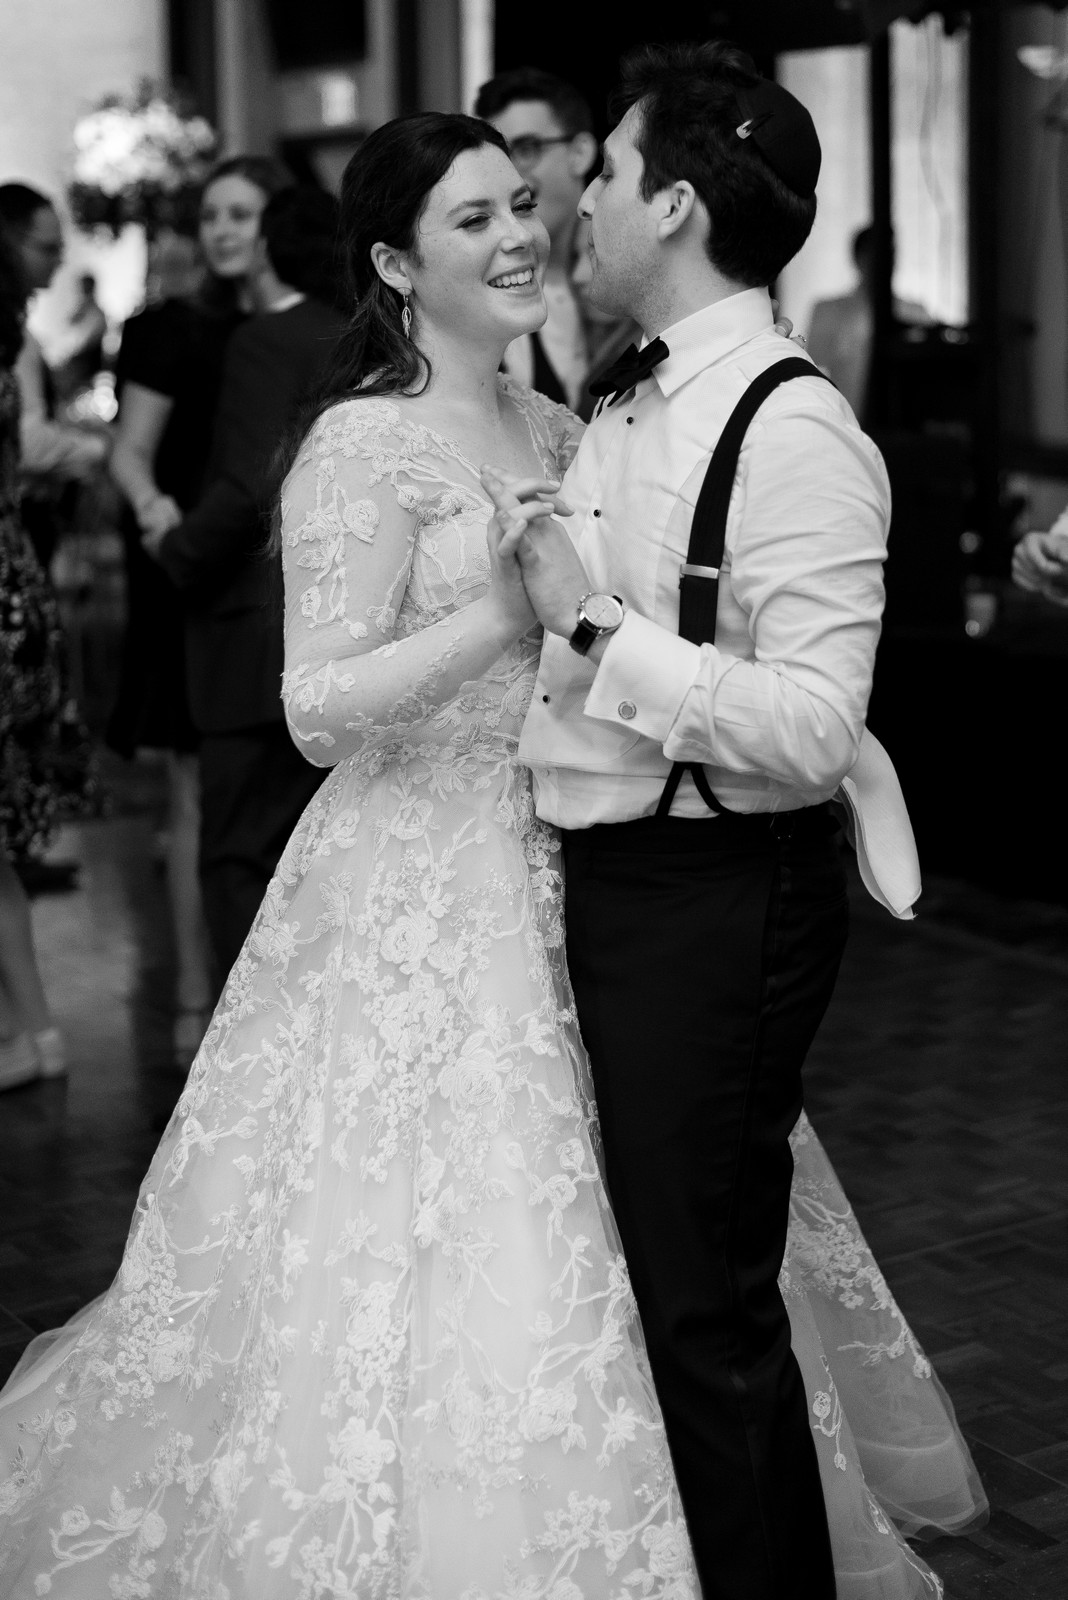 Abby and Miles' Modern Jewish Wedding at Nicotra's Ballroom, Hilton Garden Inn, Staten Island, NY, Photos by Chaim Schvarcz